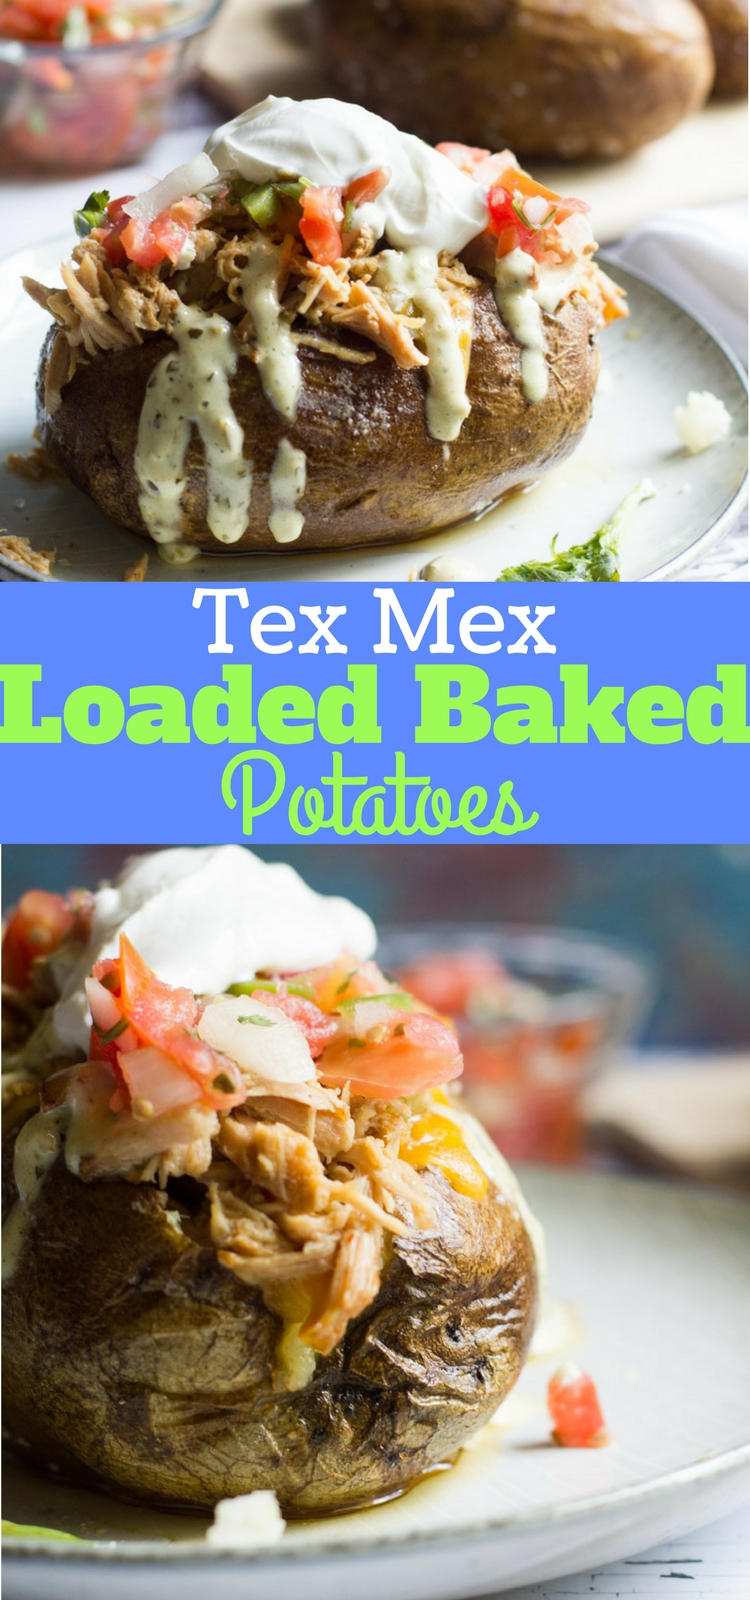 These easy Tex Mex loaded baked potatoes are topped with a slow cooked Tex Mex style pulled pork, cheese, pico de gallo and jalapeno ranch. A hearty and easy to prepare meal!